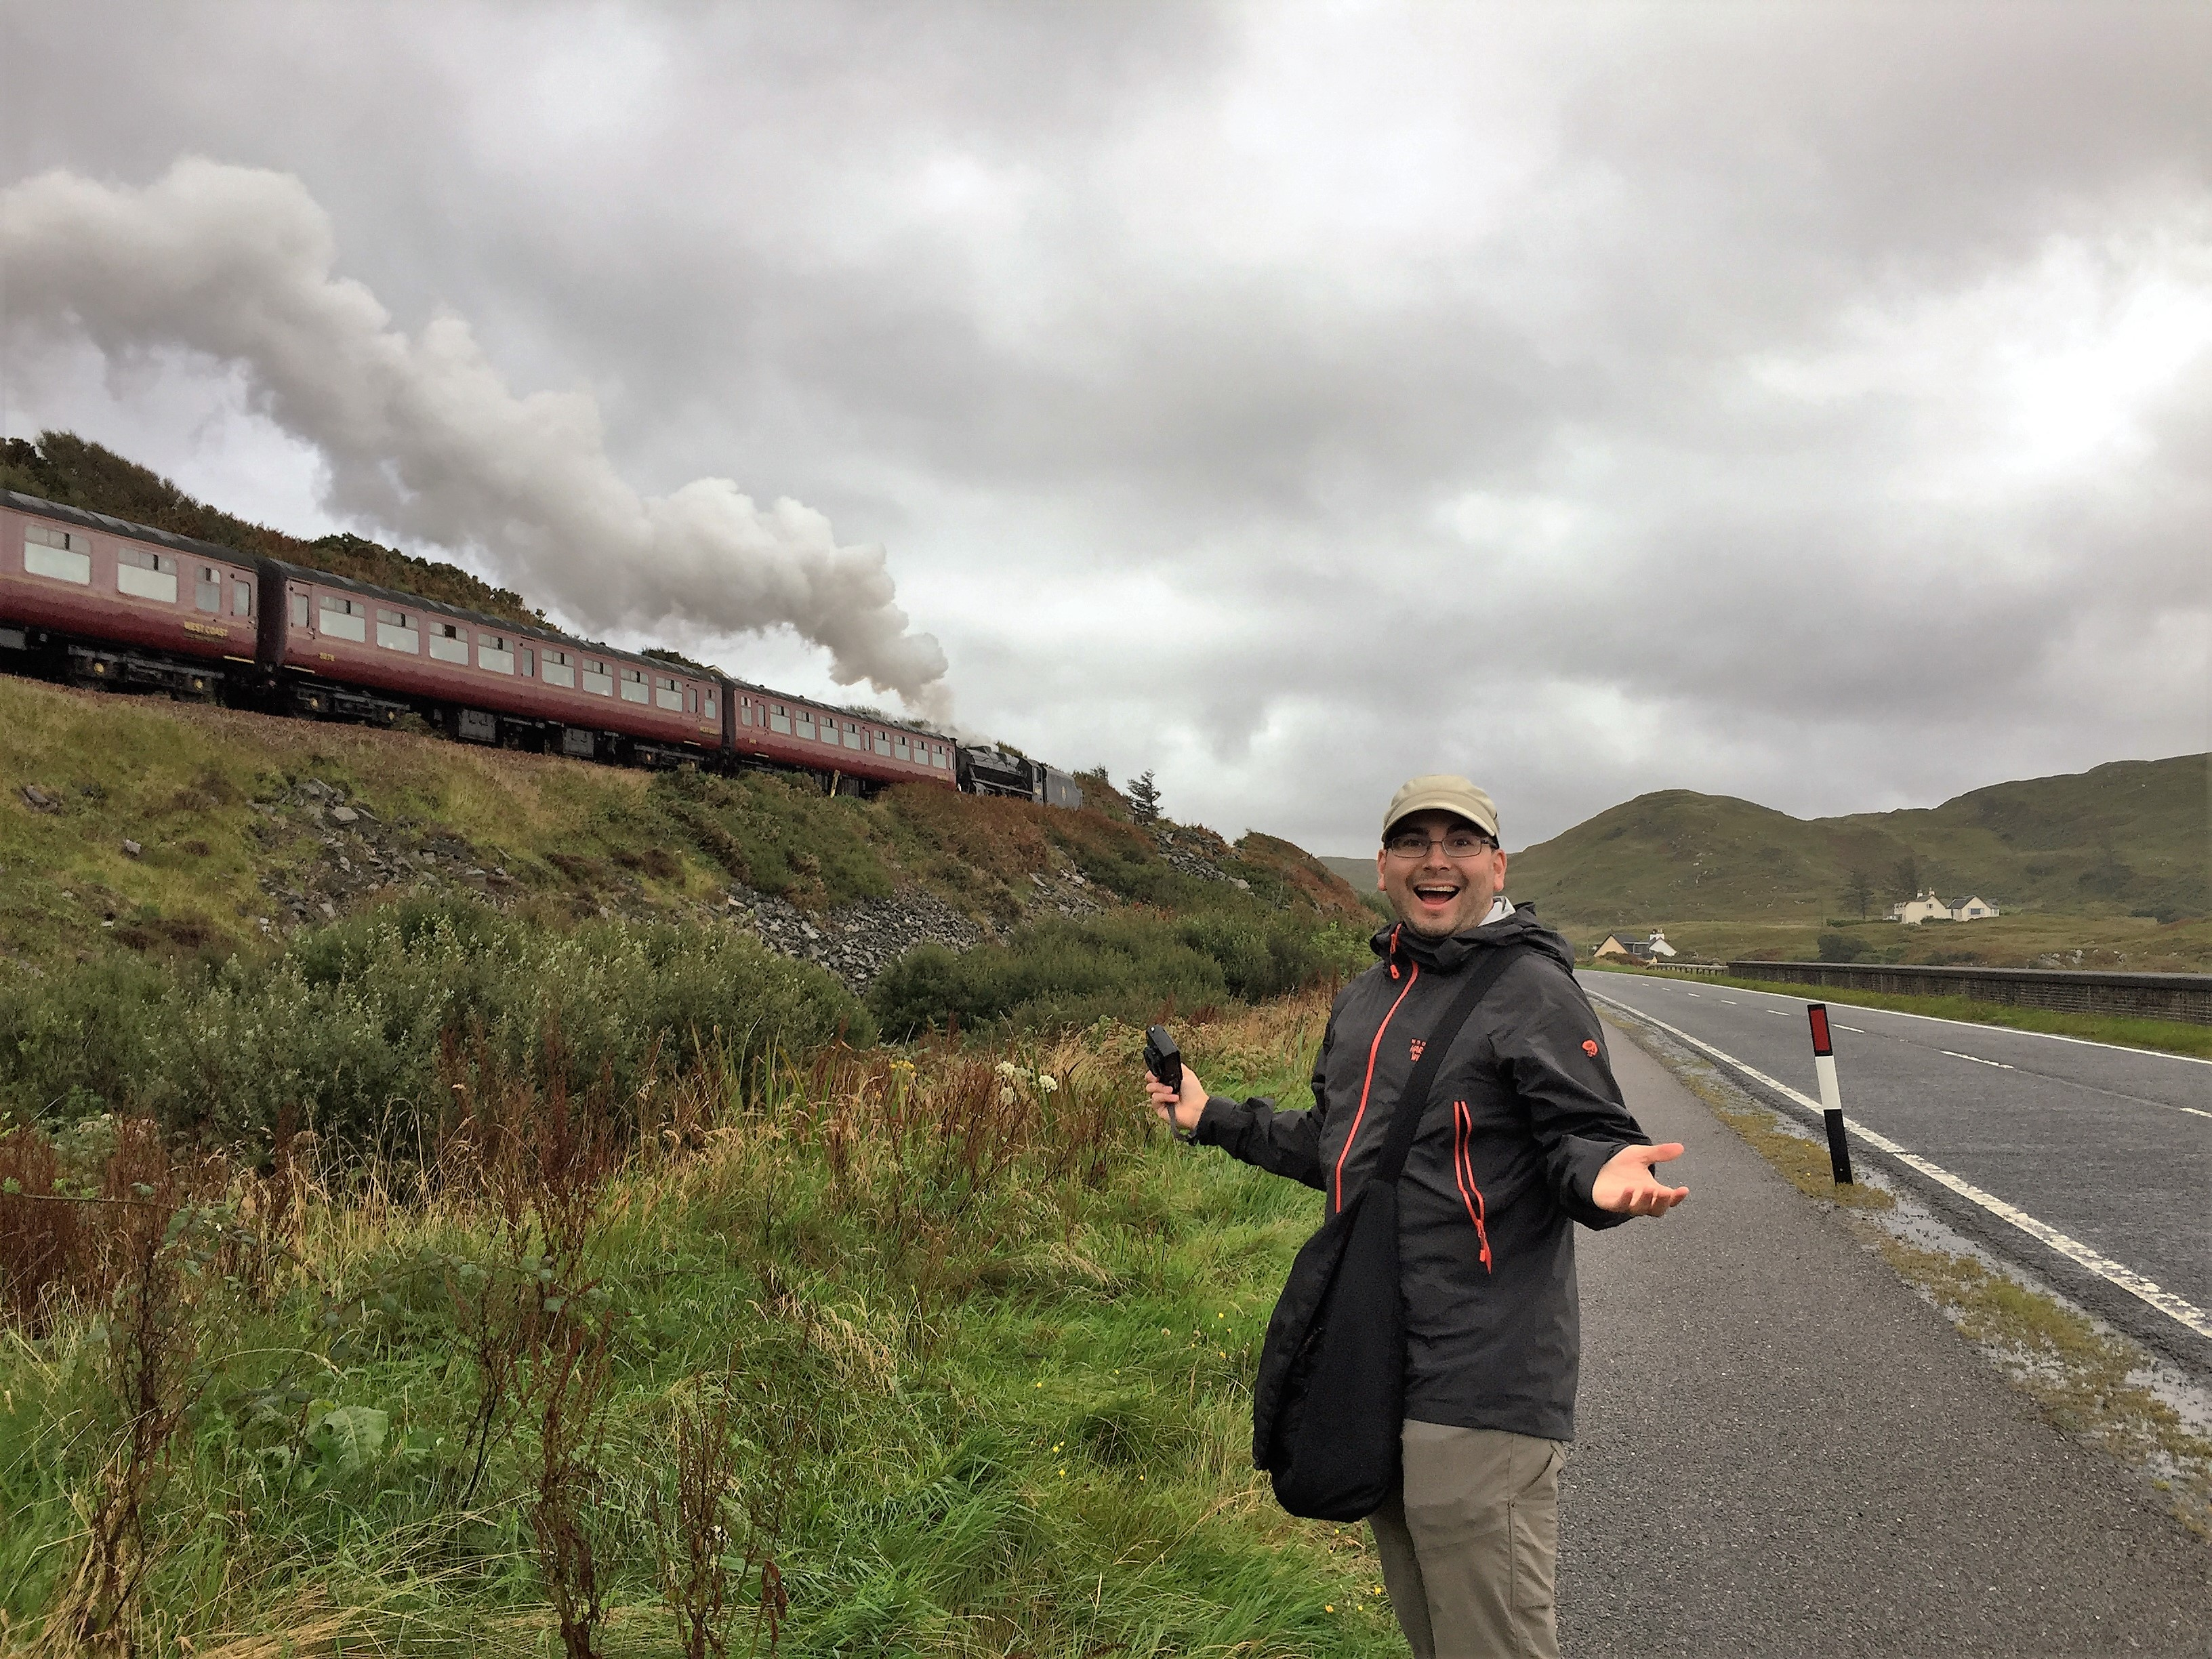 It even has steam trains. What more could a person want in a town?